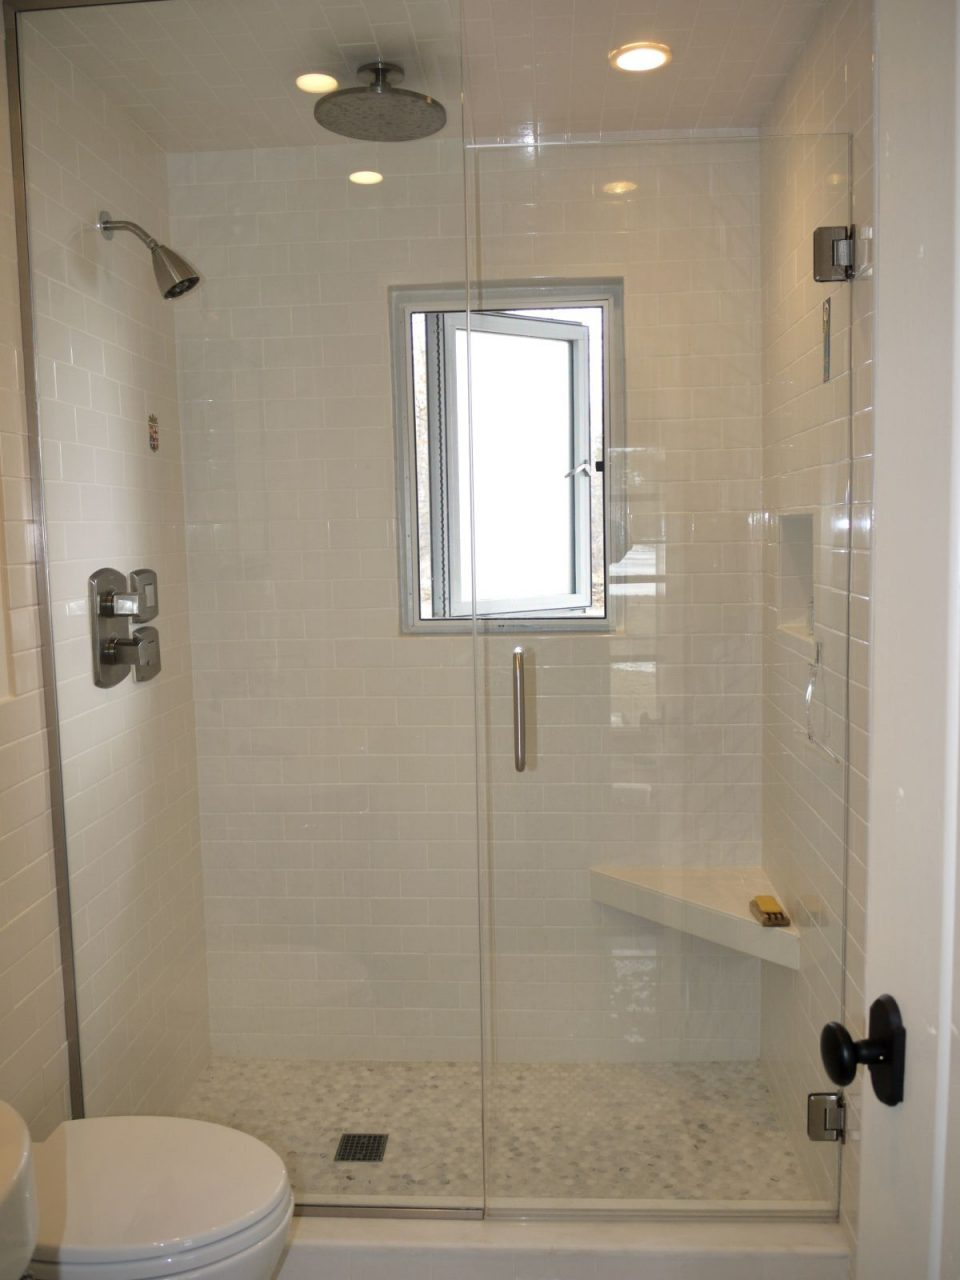 Small Walk In Shower With Window Small Grip Bar And Foot Shelf